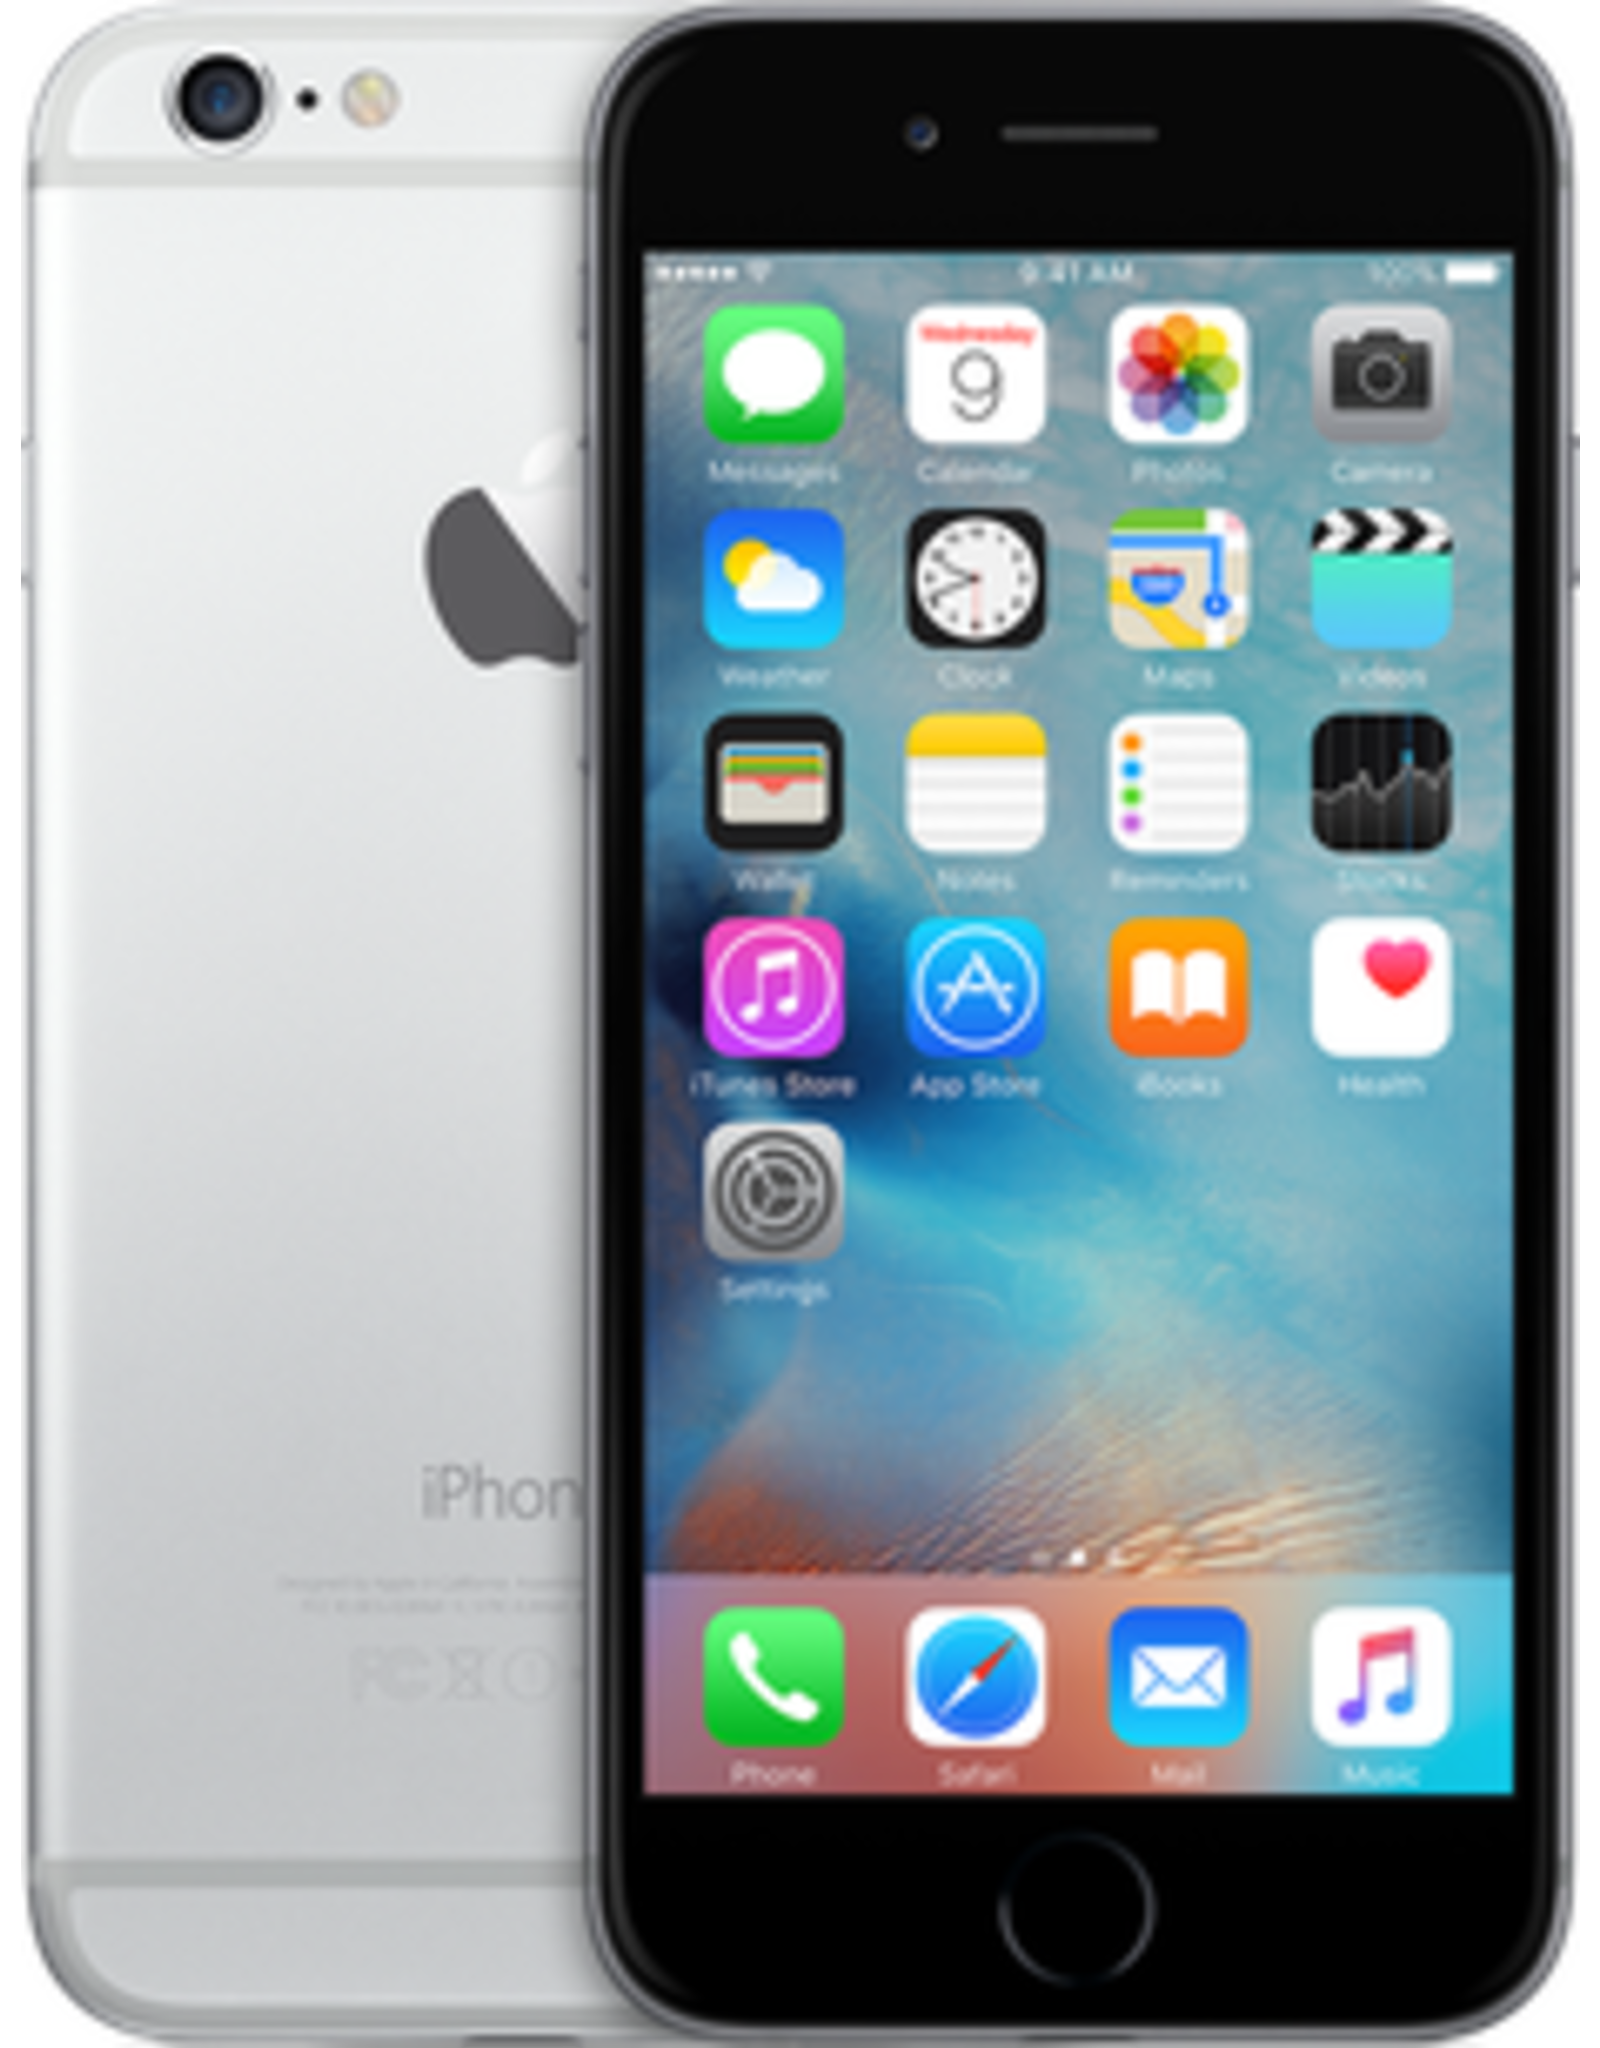 Apple iPhone 5s (16GB, Space Gray) - 30 Day Exchange